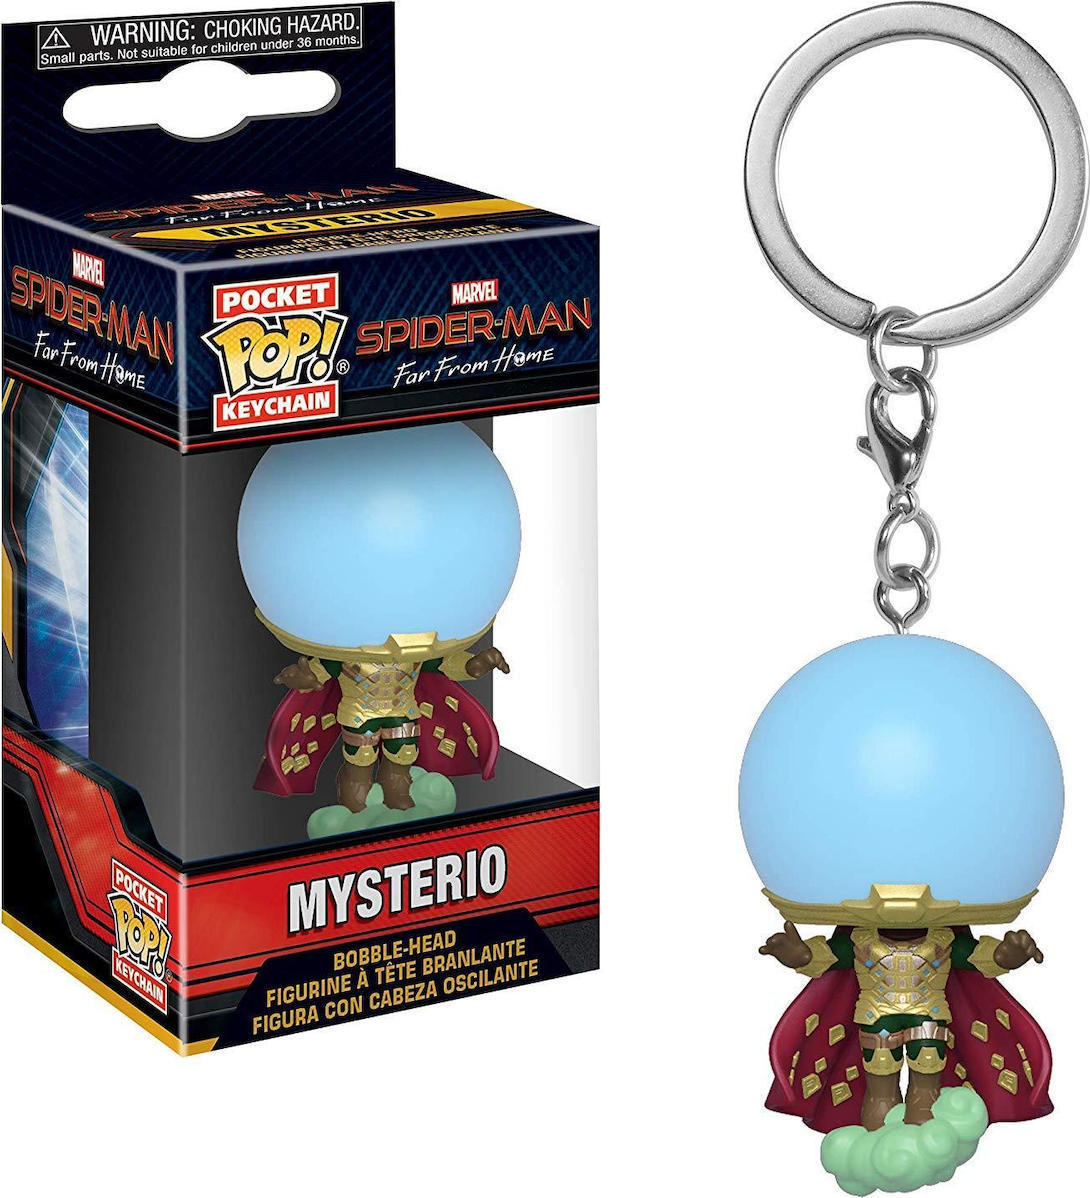 Funko Pocket POP! Spider-Man Far From Home - Mysterio  Bubble-Head Figure Keychain